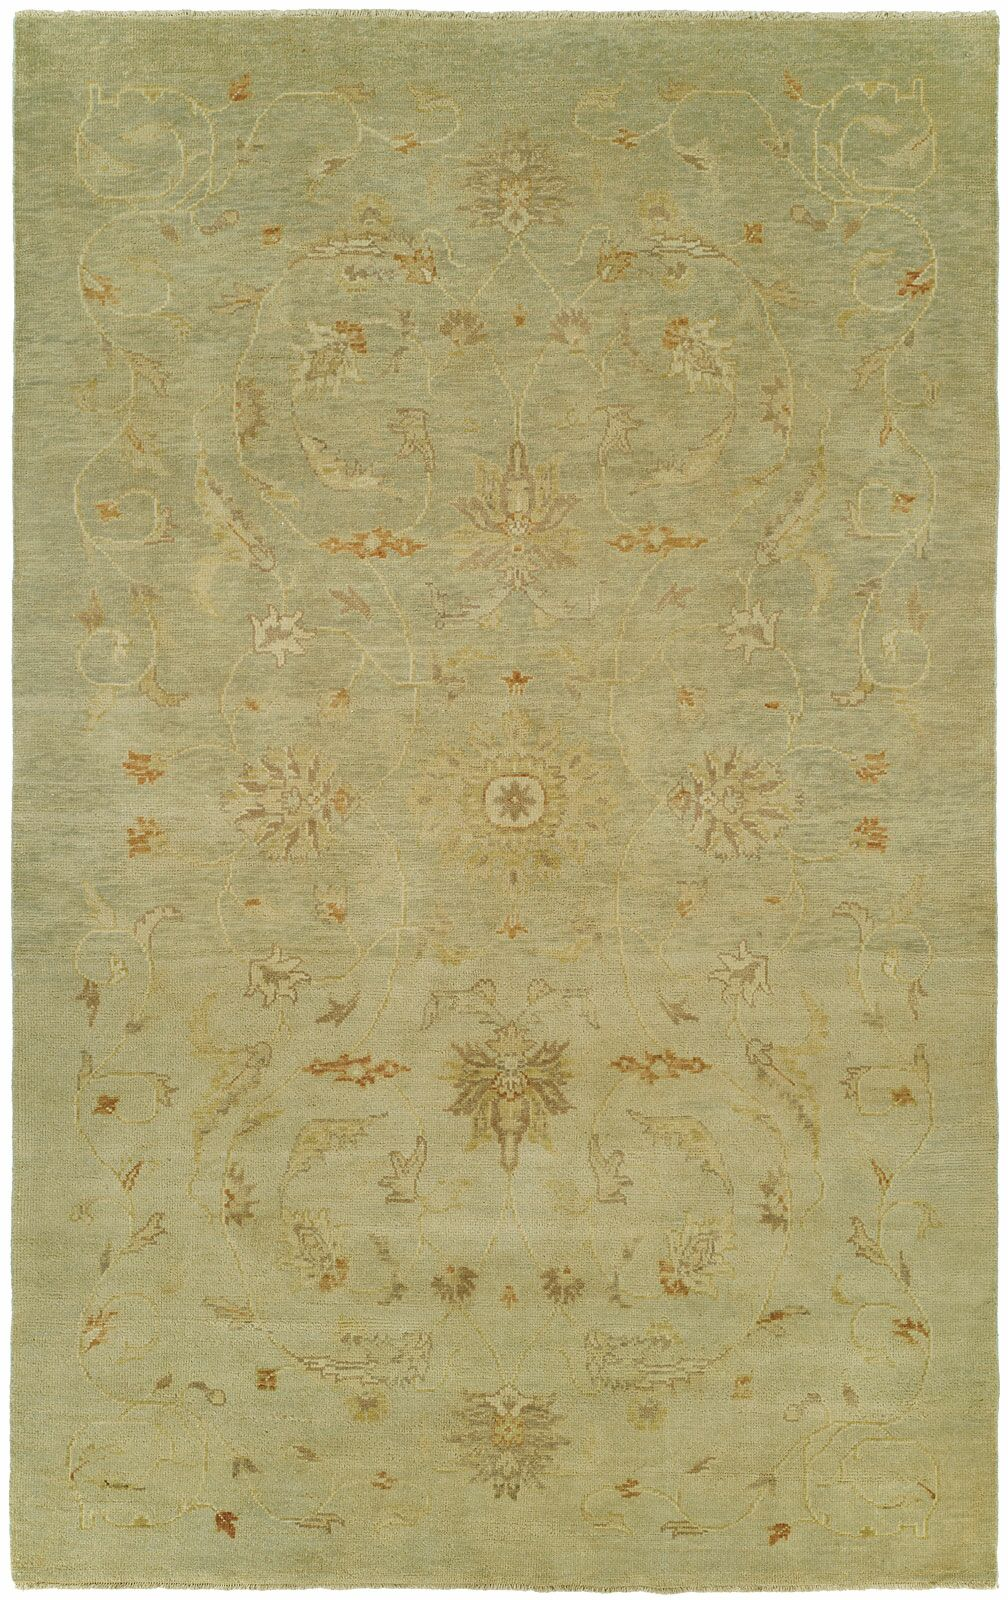 Jasmine Hand Knotted Wool Beige Area Rug Rug Size: Rectangle 2' x 3'